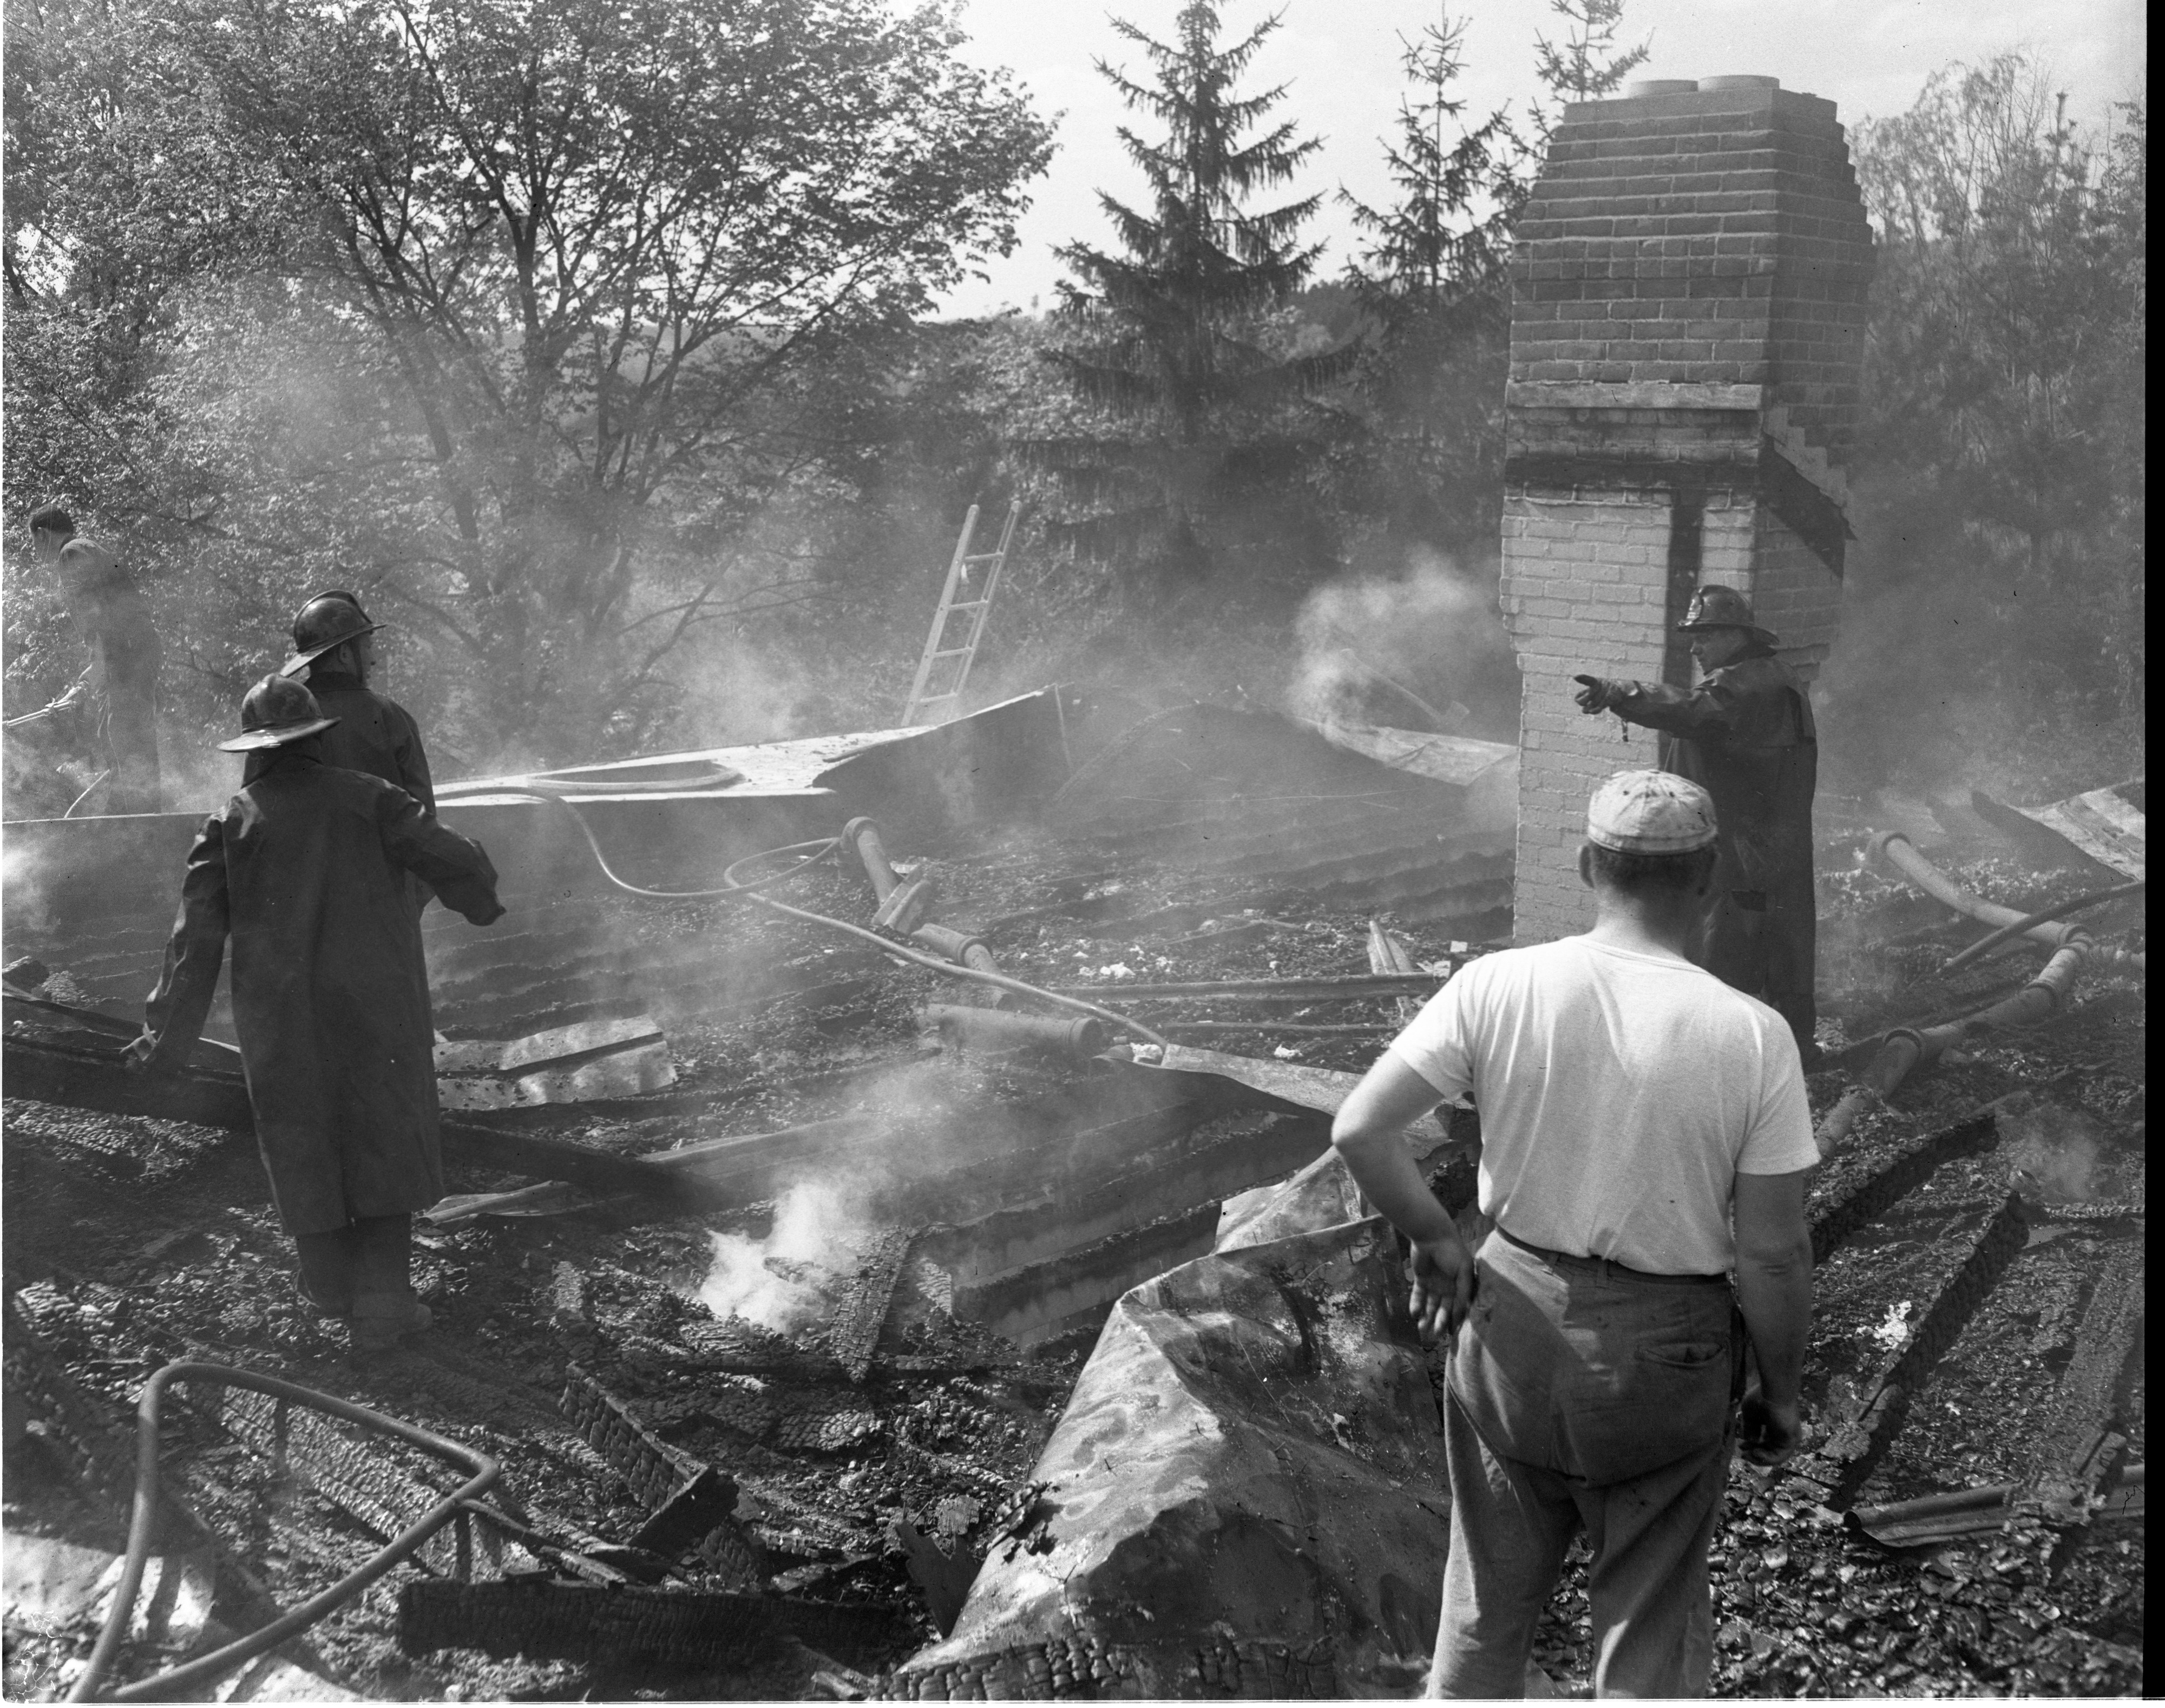 Firemen Work In The Former Attic of The Holmes Home At 175 Underdown Road, May 1953 image